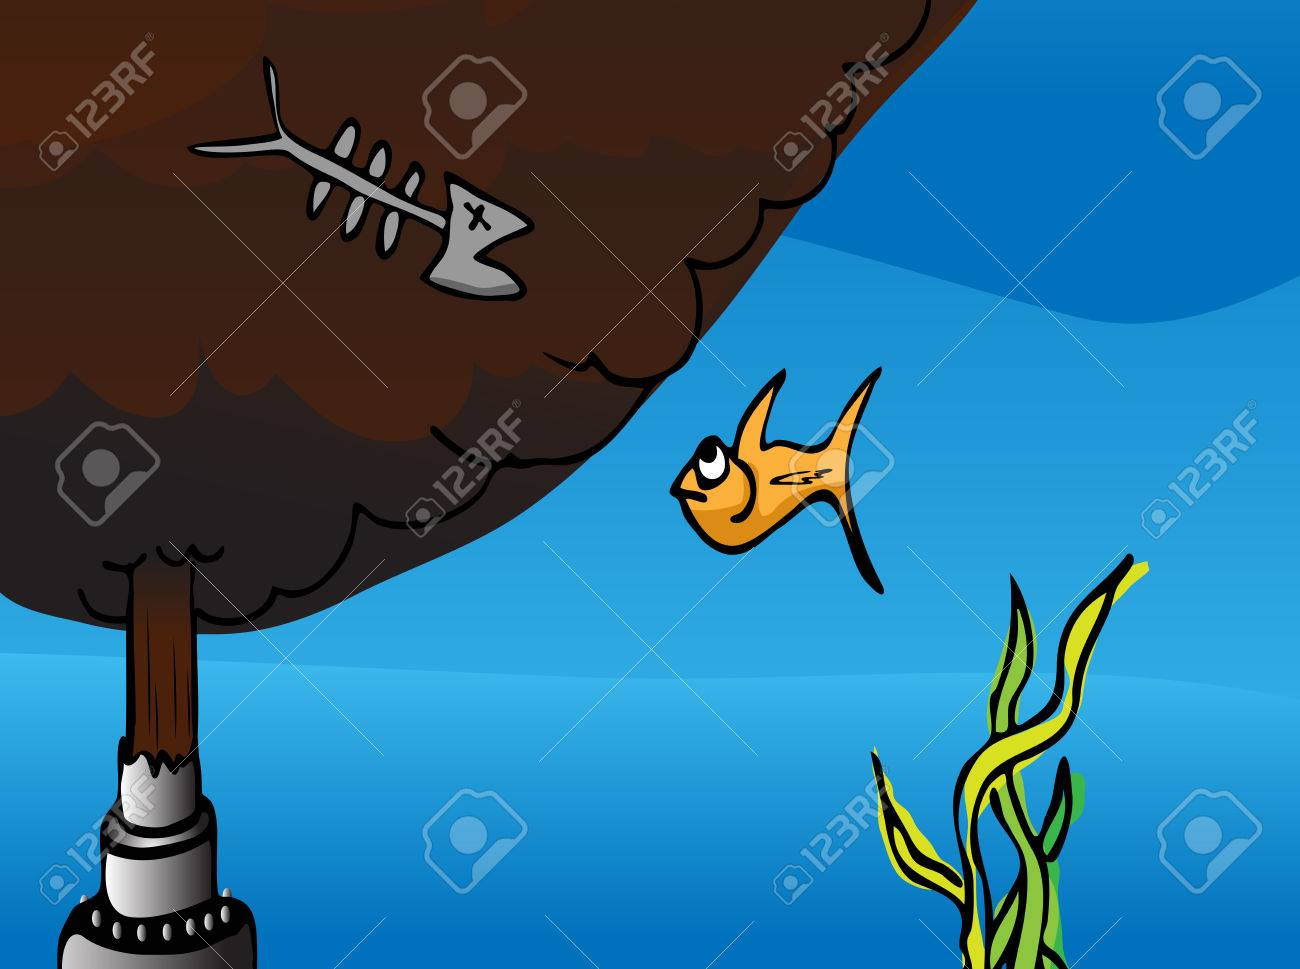 Cartoon of a fish watching the dead remains of another fish at a broken oil pipe gushing crude into the ocean. Stock Vector - 7337837